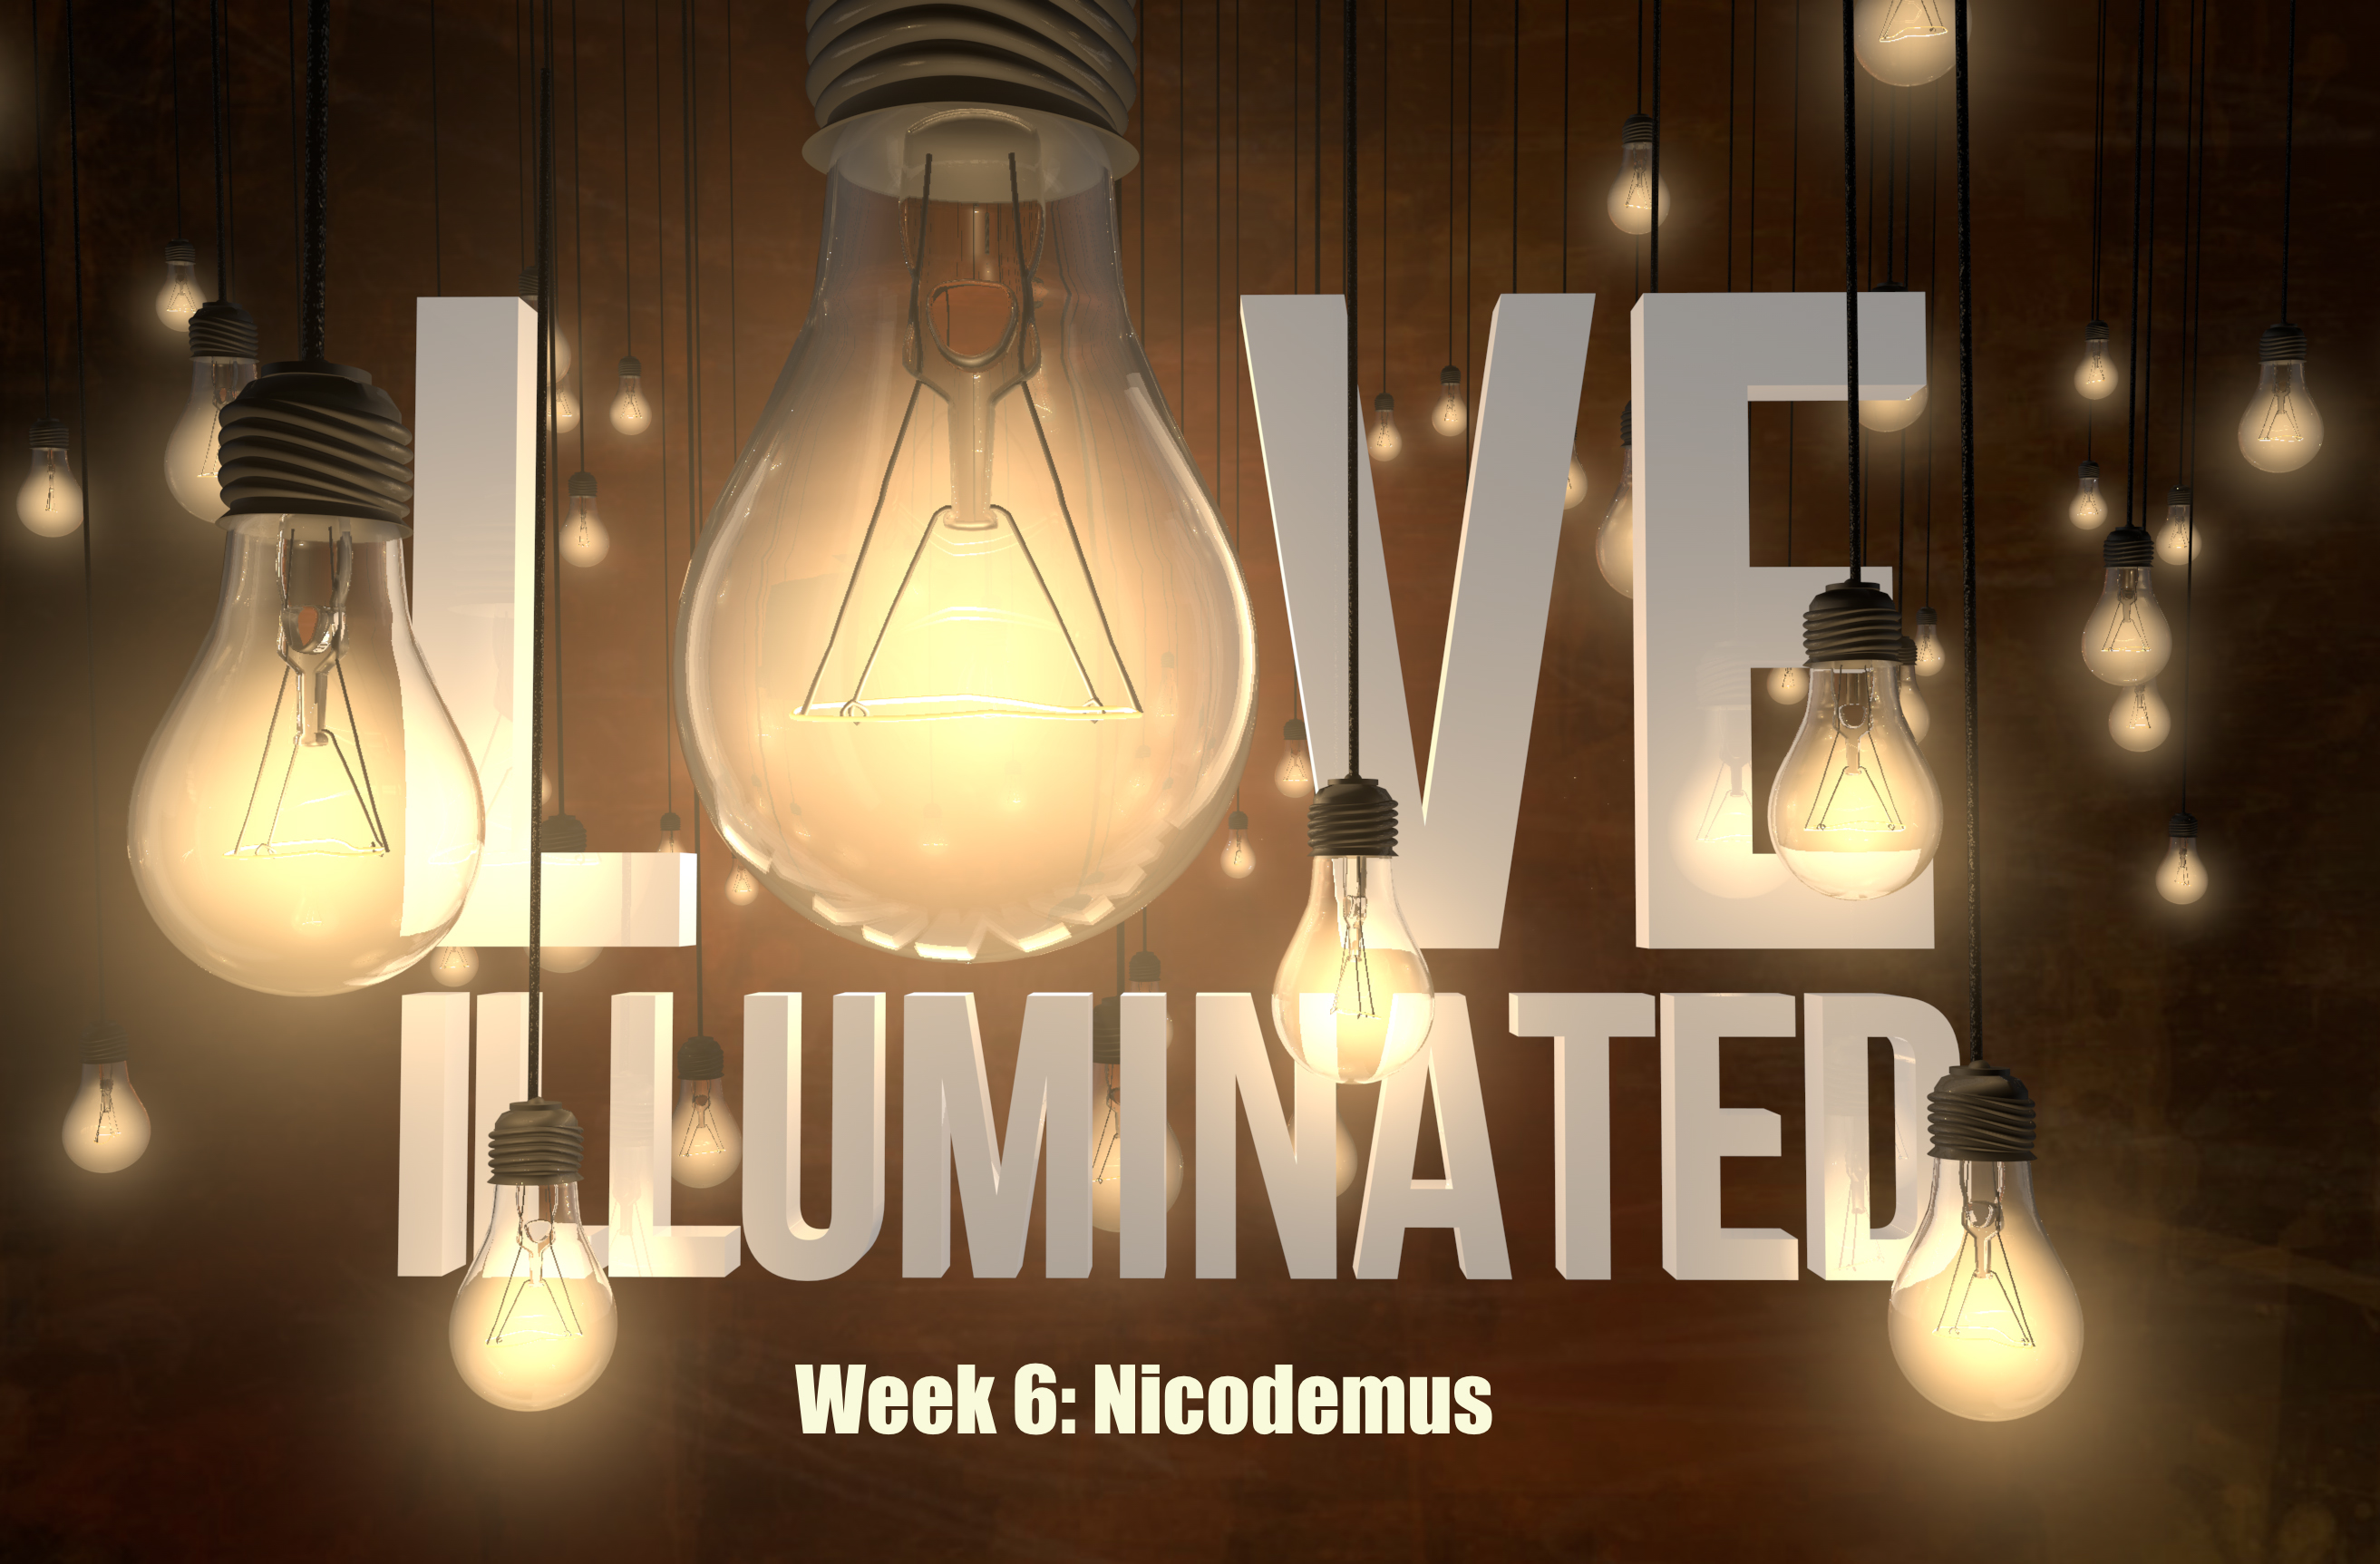 Love Illuminated, Part 6: Nicodemus